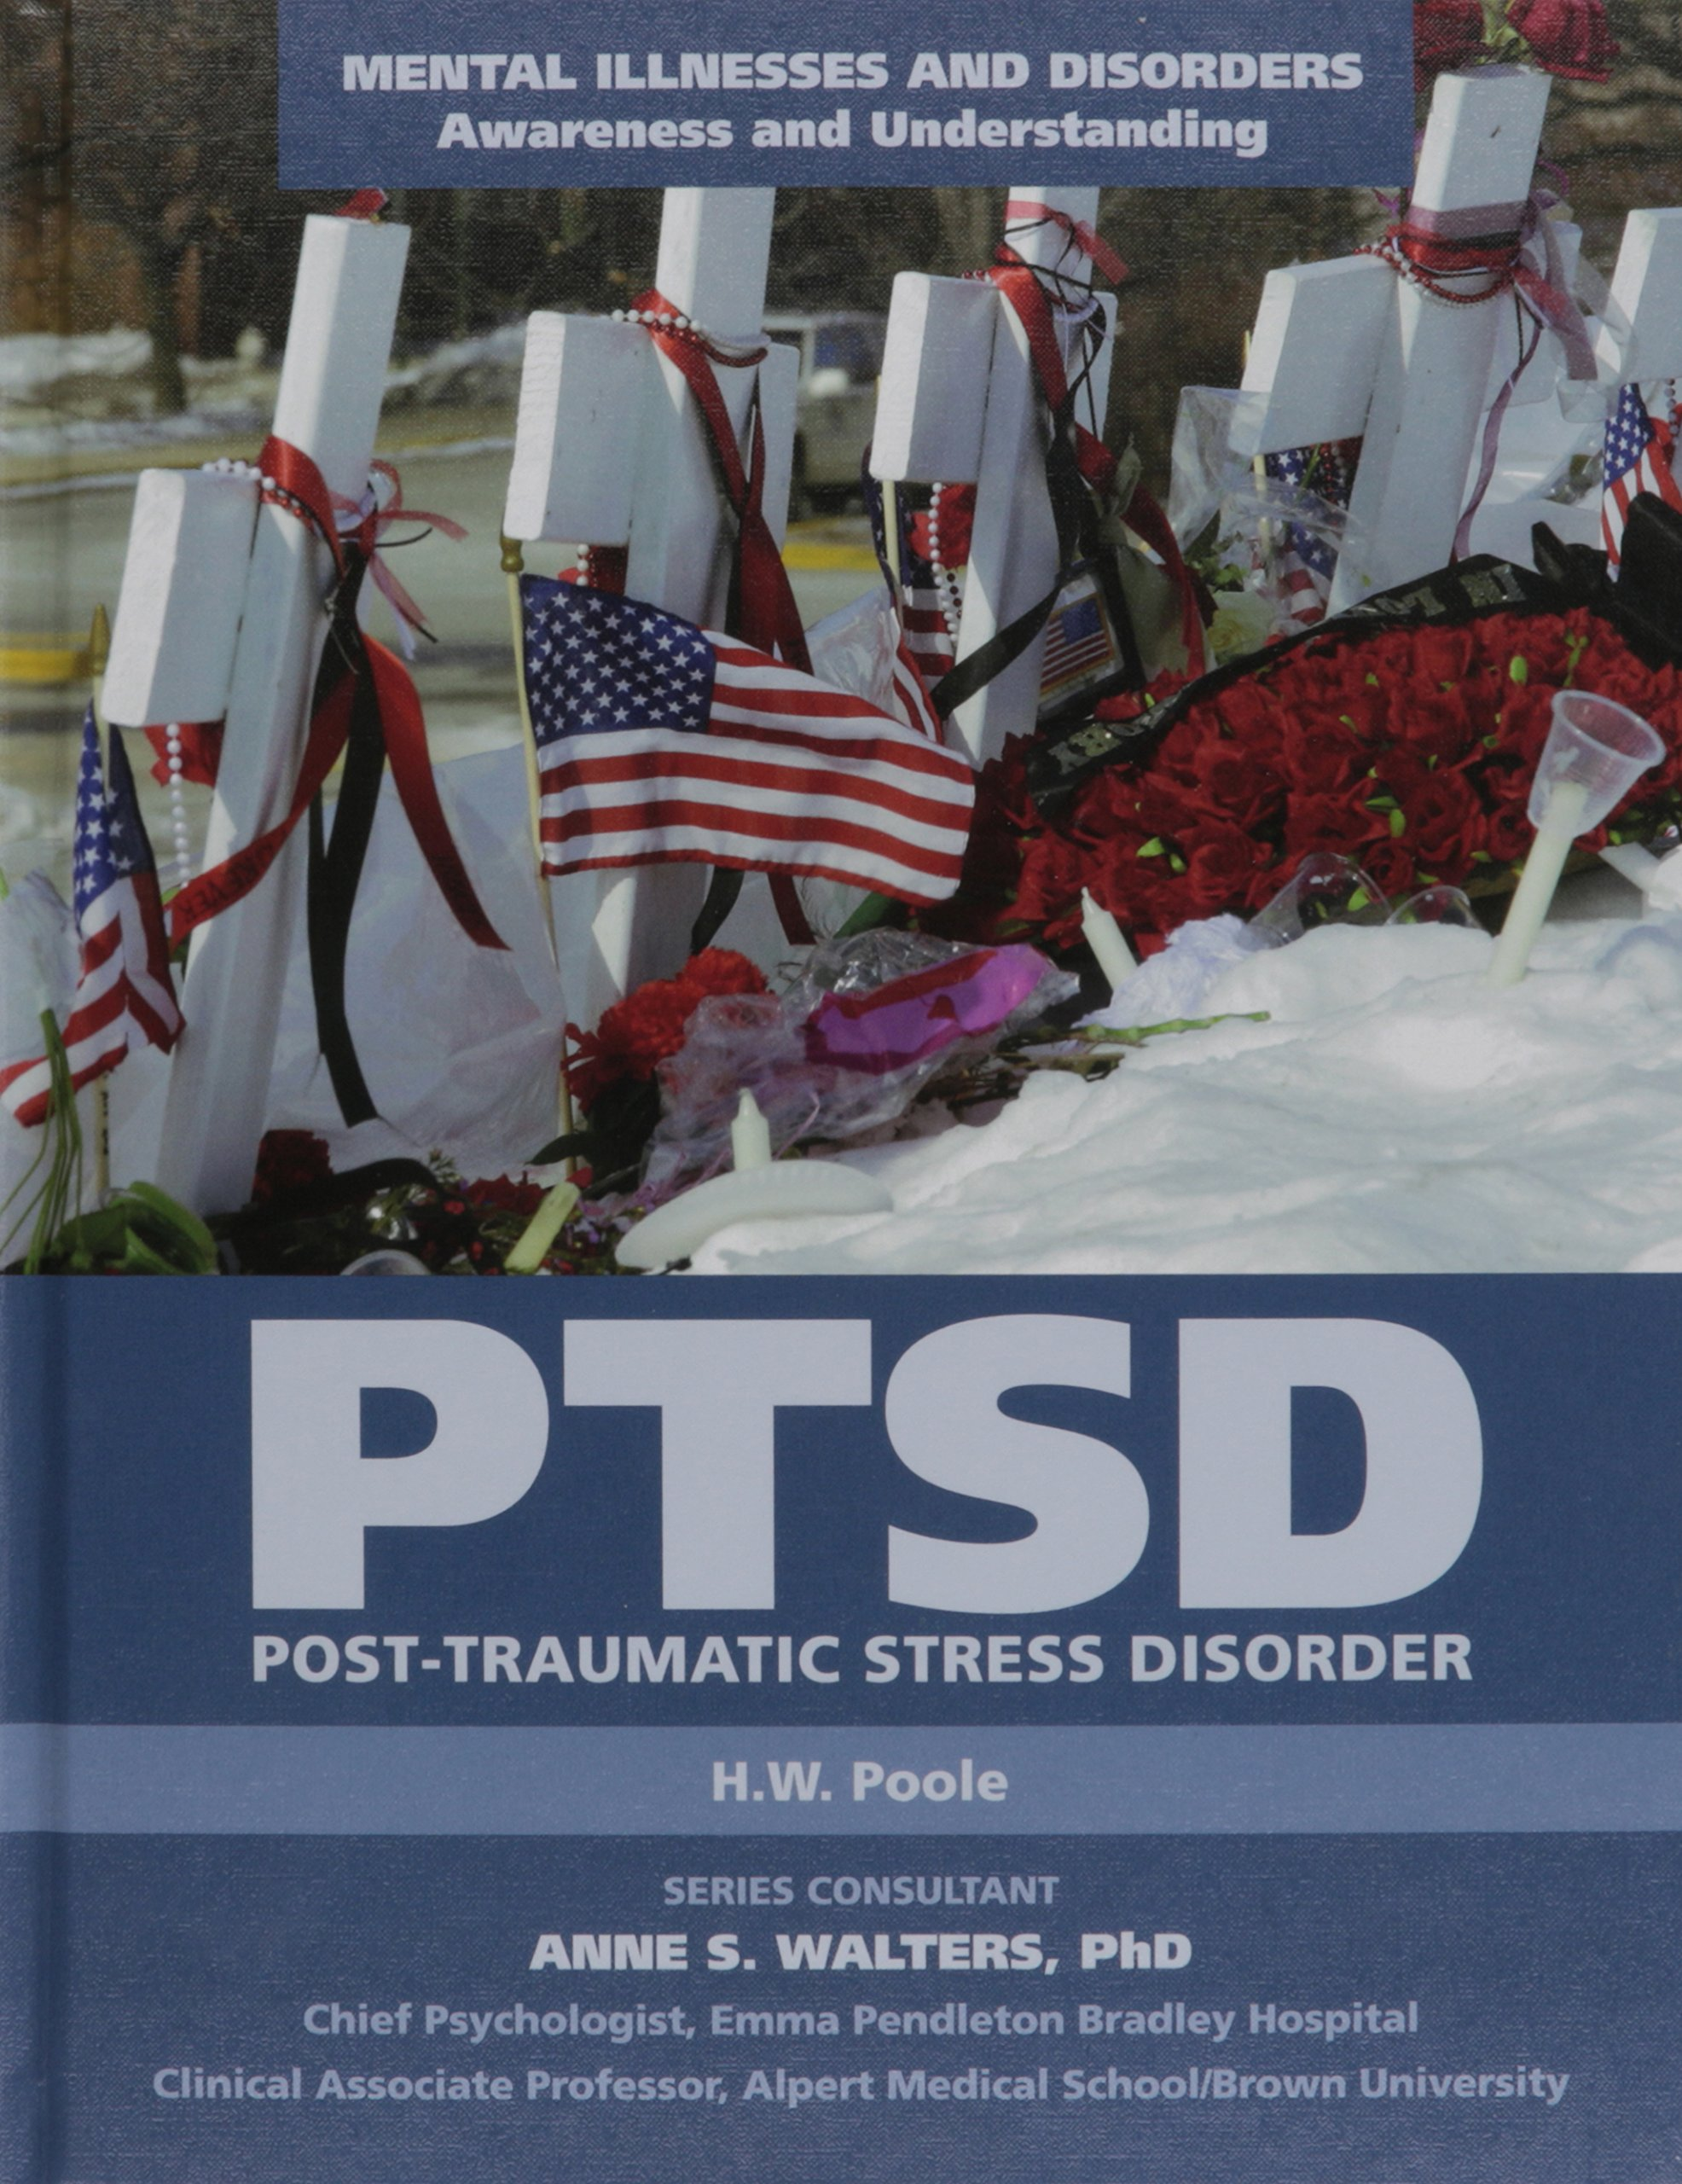 Ptsd Post-traumatic Stress Disorder (Mental Illnesses and Disorders: Awareness and Understanding) pdf